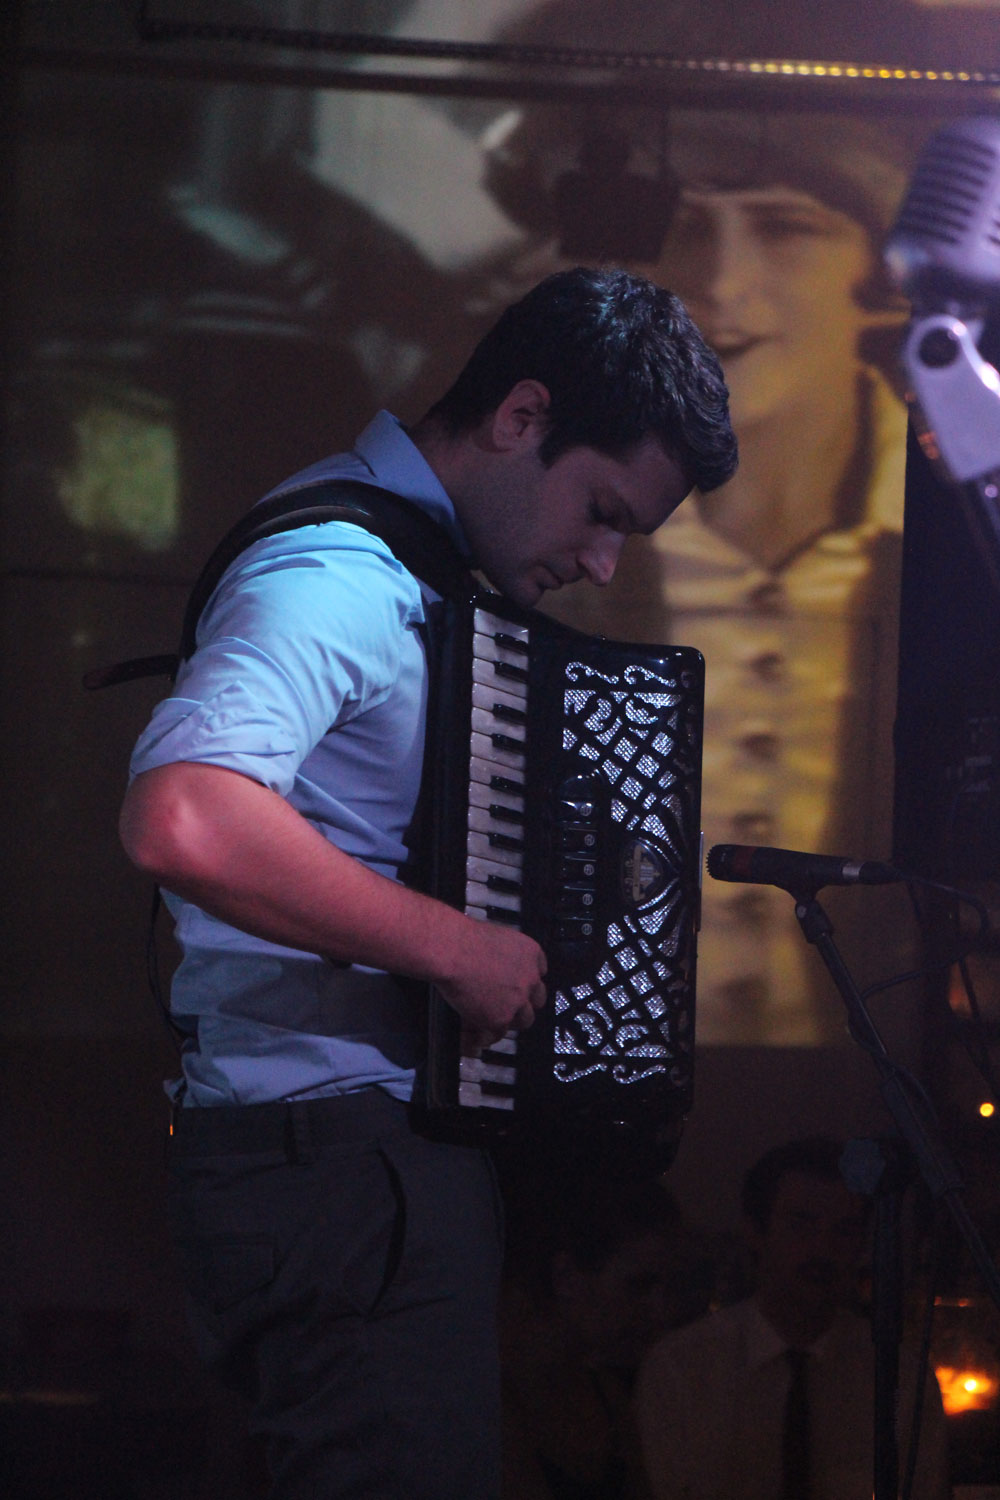 Accordion player from Cafe Manouche